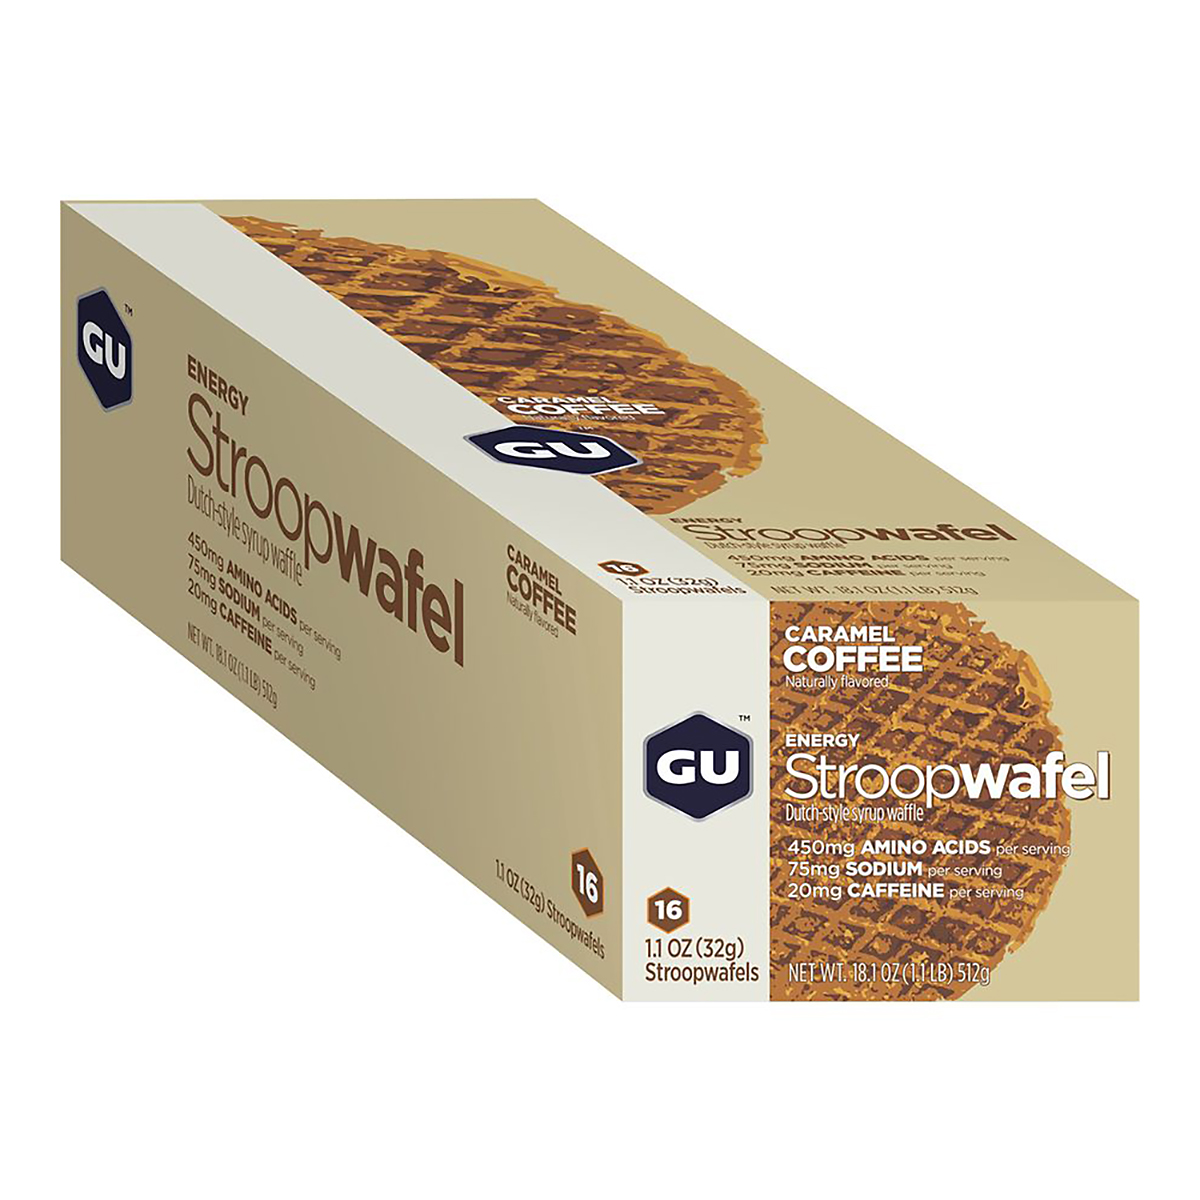 Gu Energy Stroopwafel - Color: Caramel Coffee - Size: Box of 16, Caramel Coffee, large, image 2